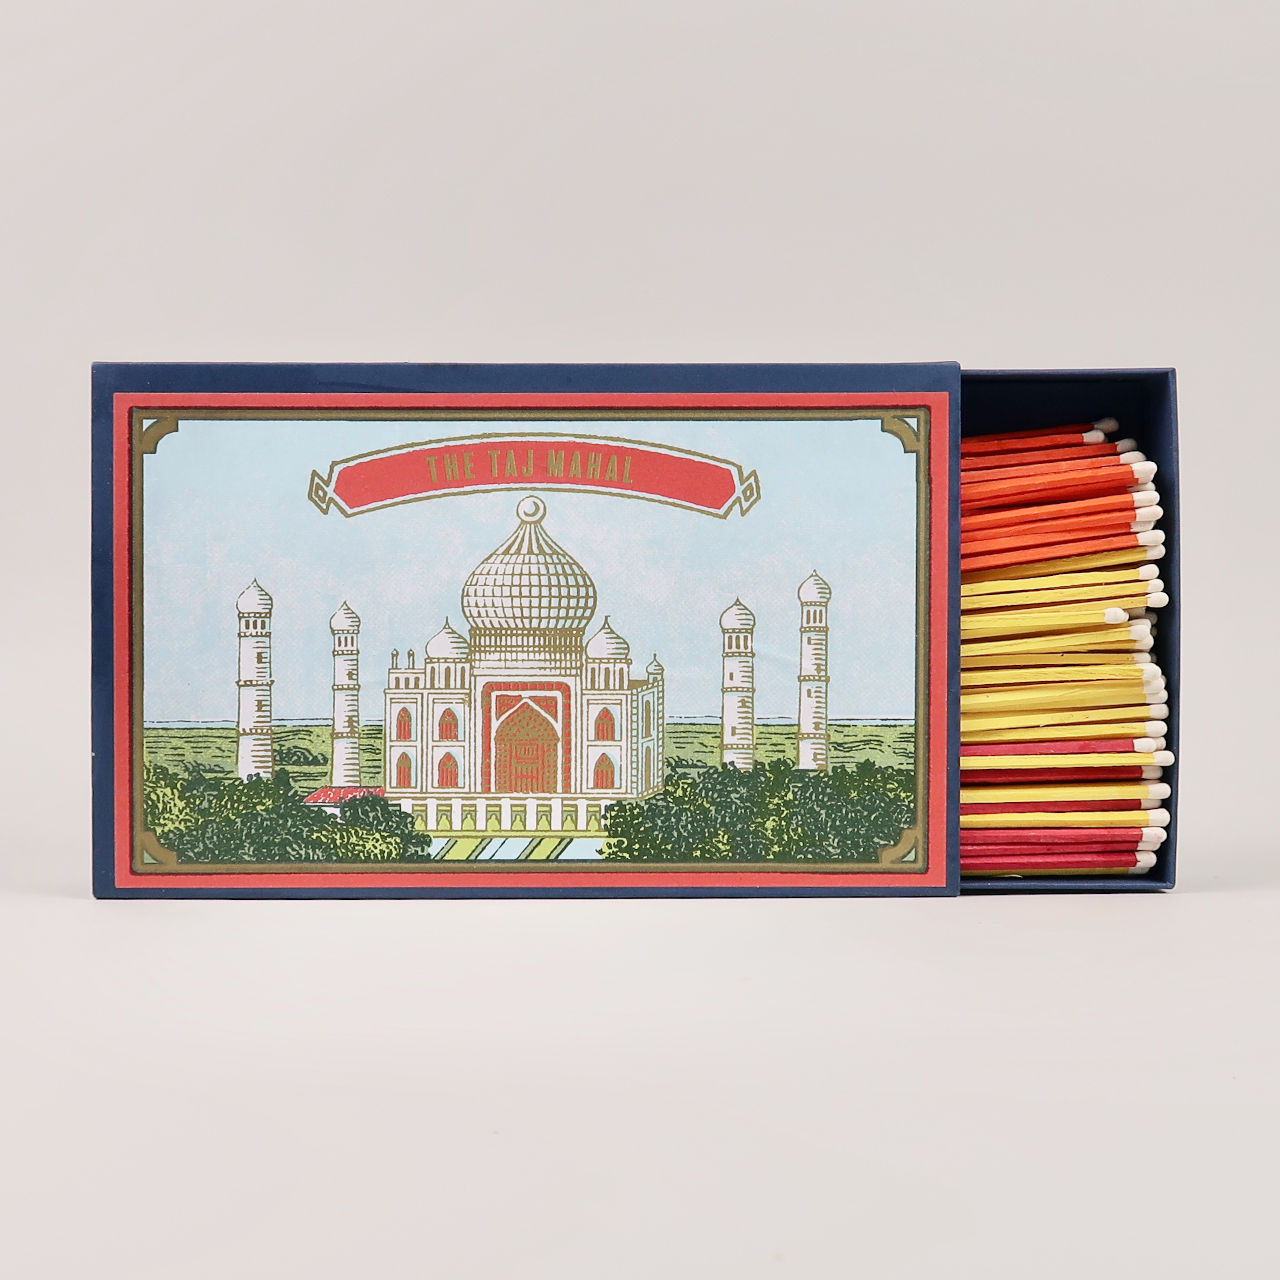 Giant Box of Matches - Taj Mahal